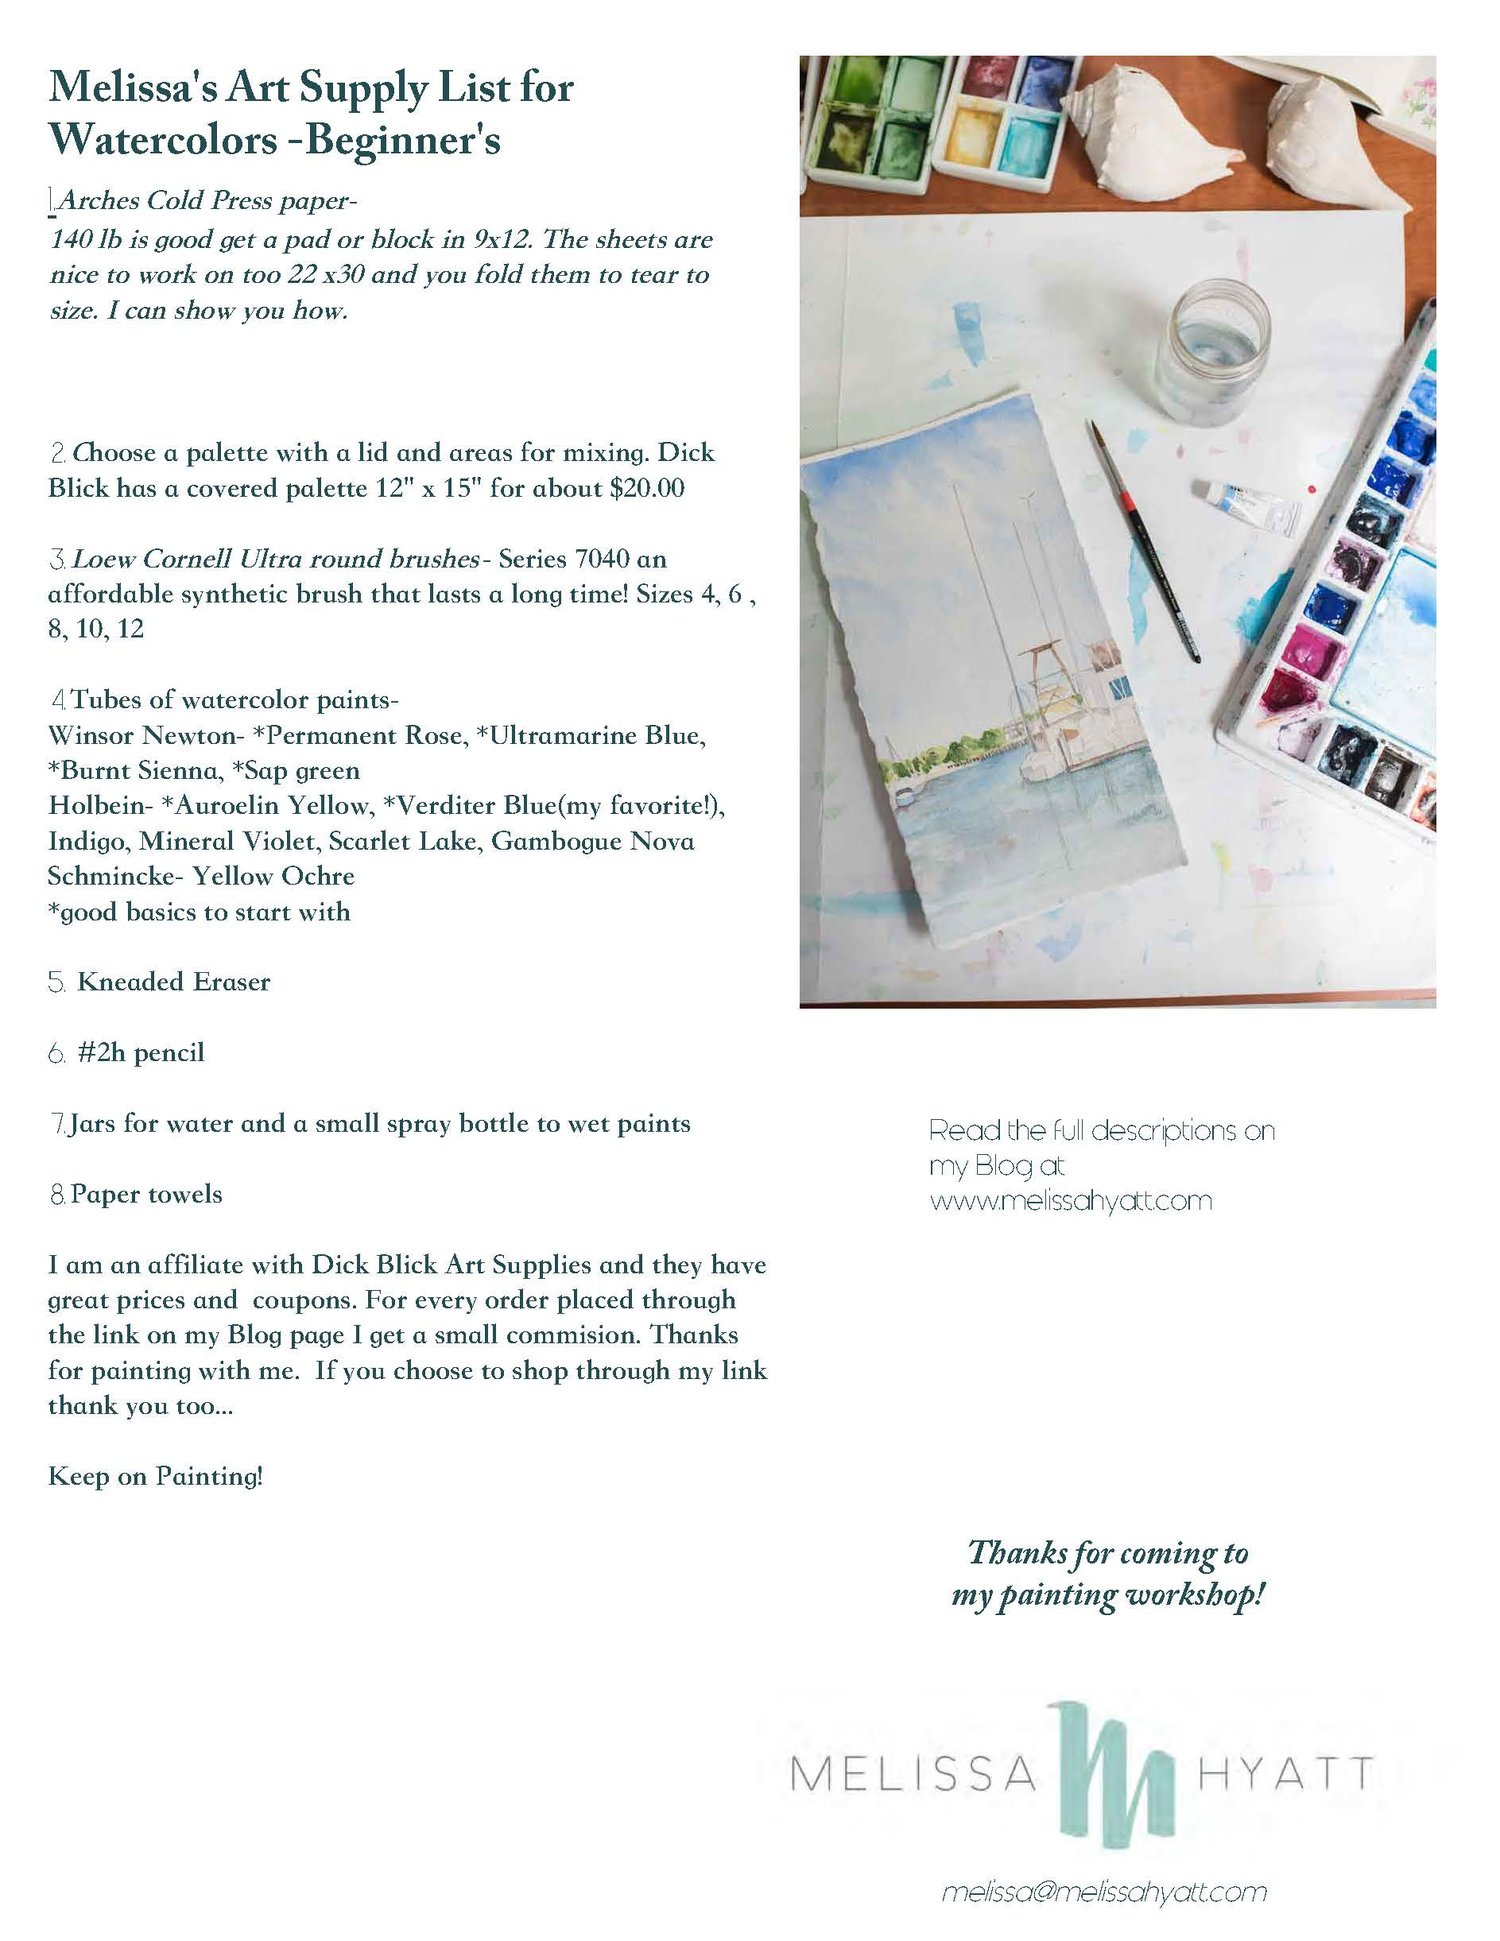 A watercolor supply list for beginner's and any artist! — Melissa